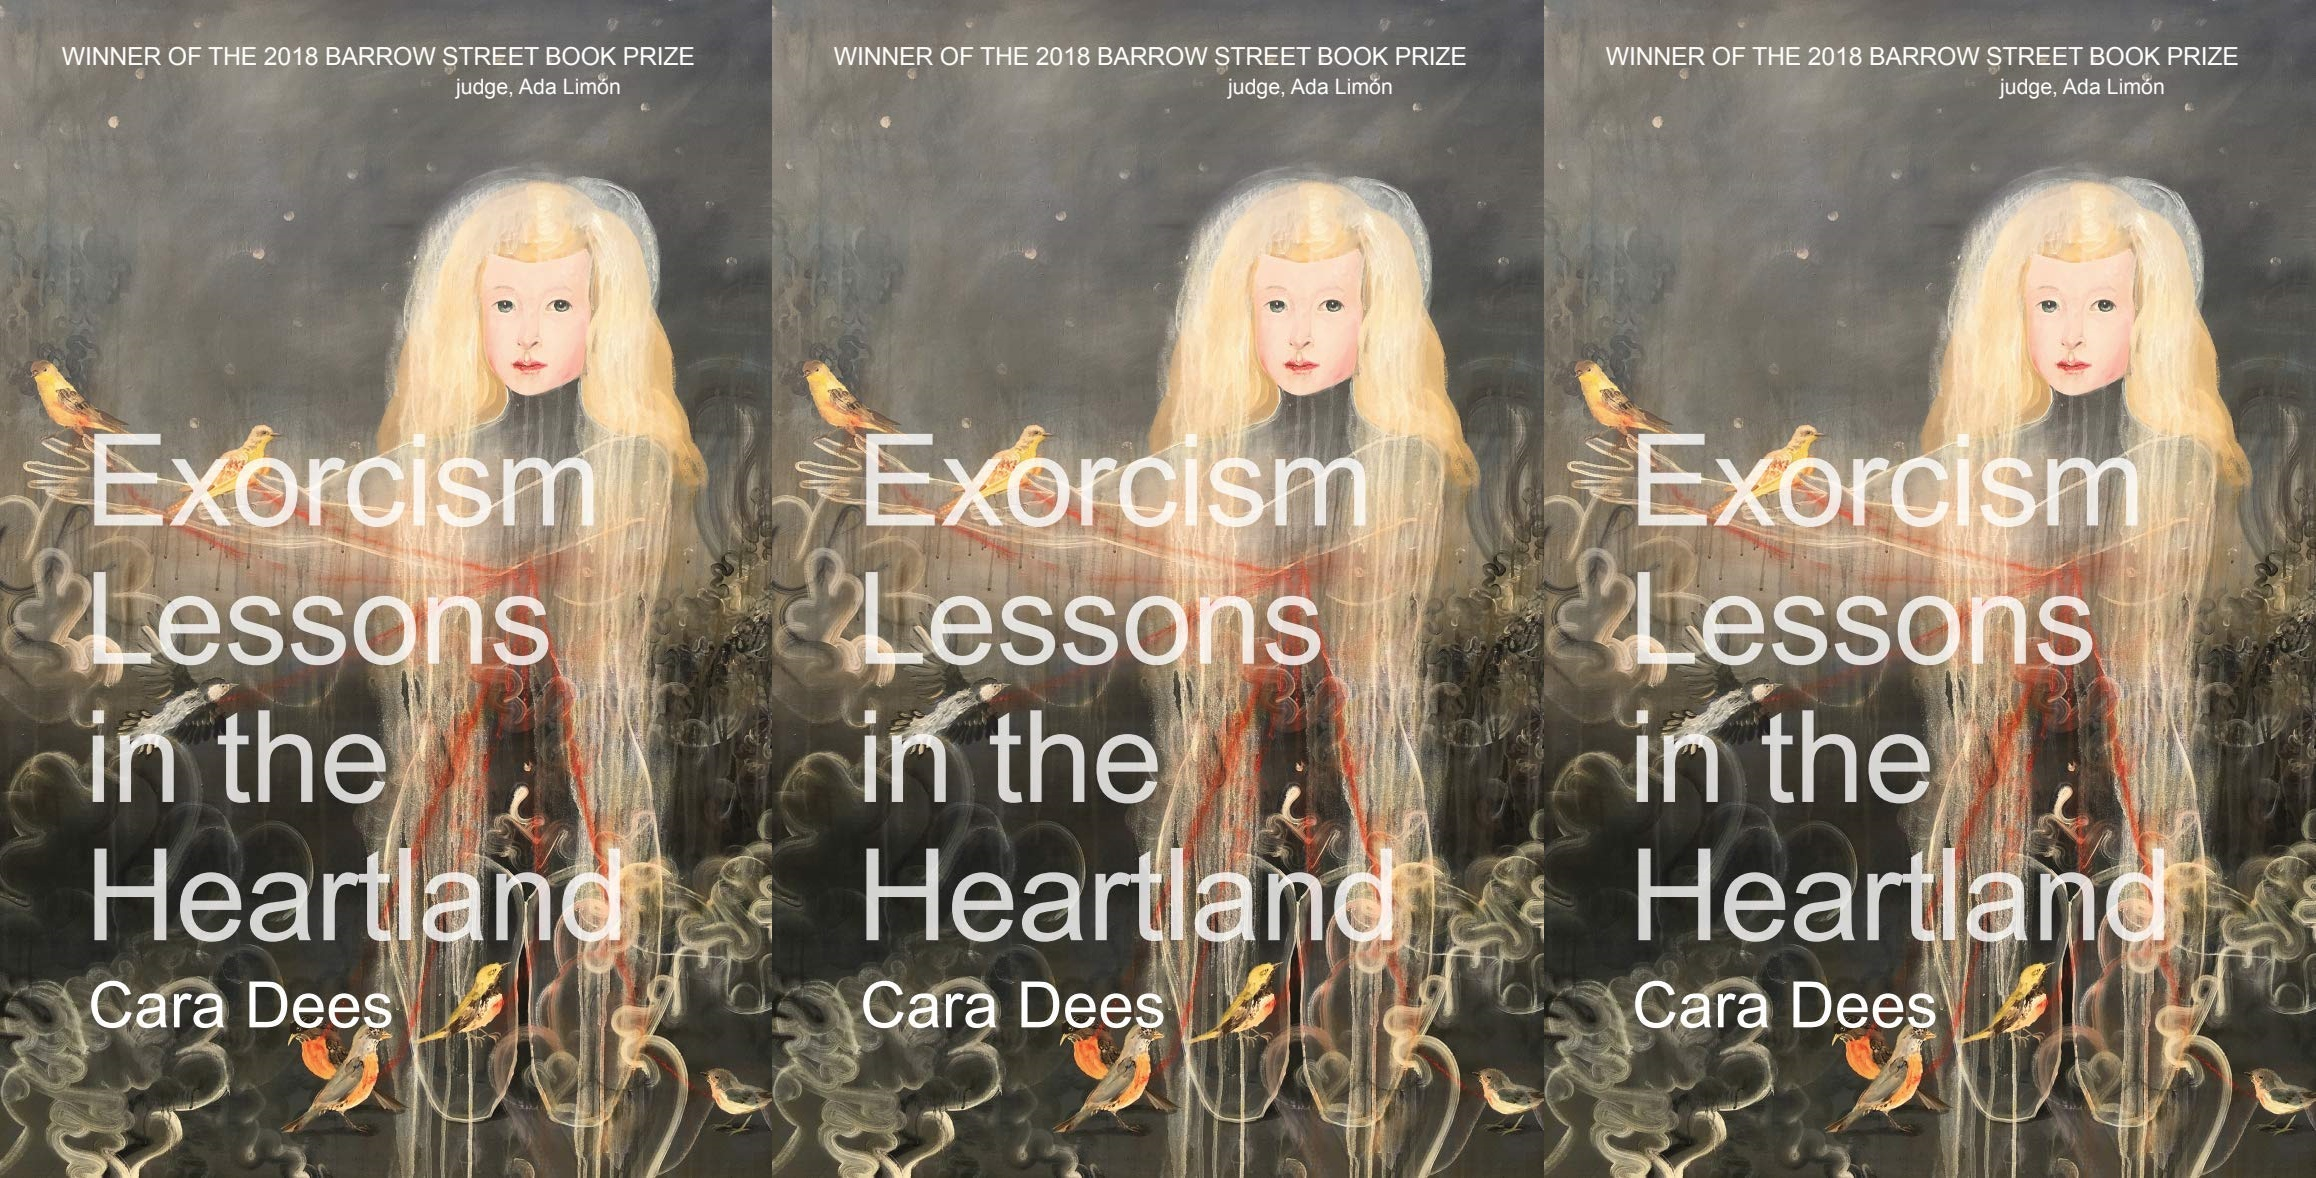 upcoming poetry collections, exorcism lessons in the heartland by cara dees, books